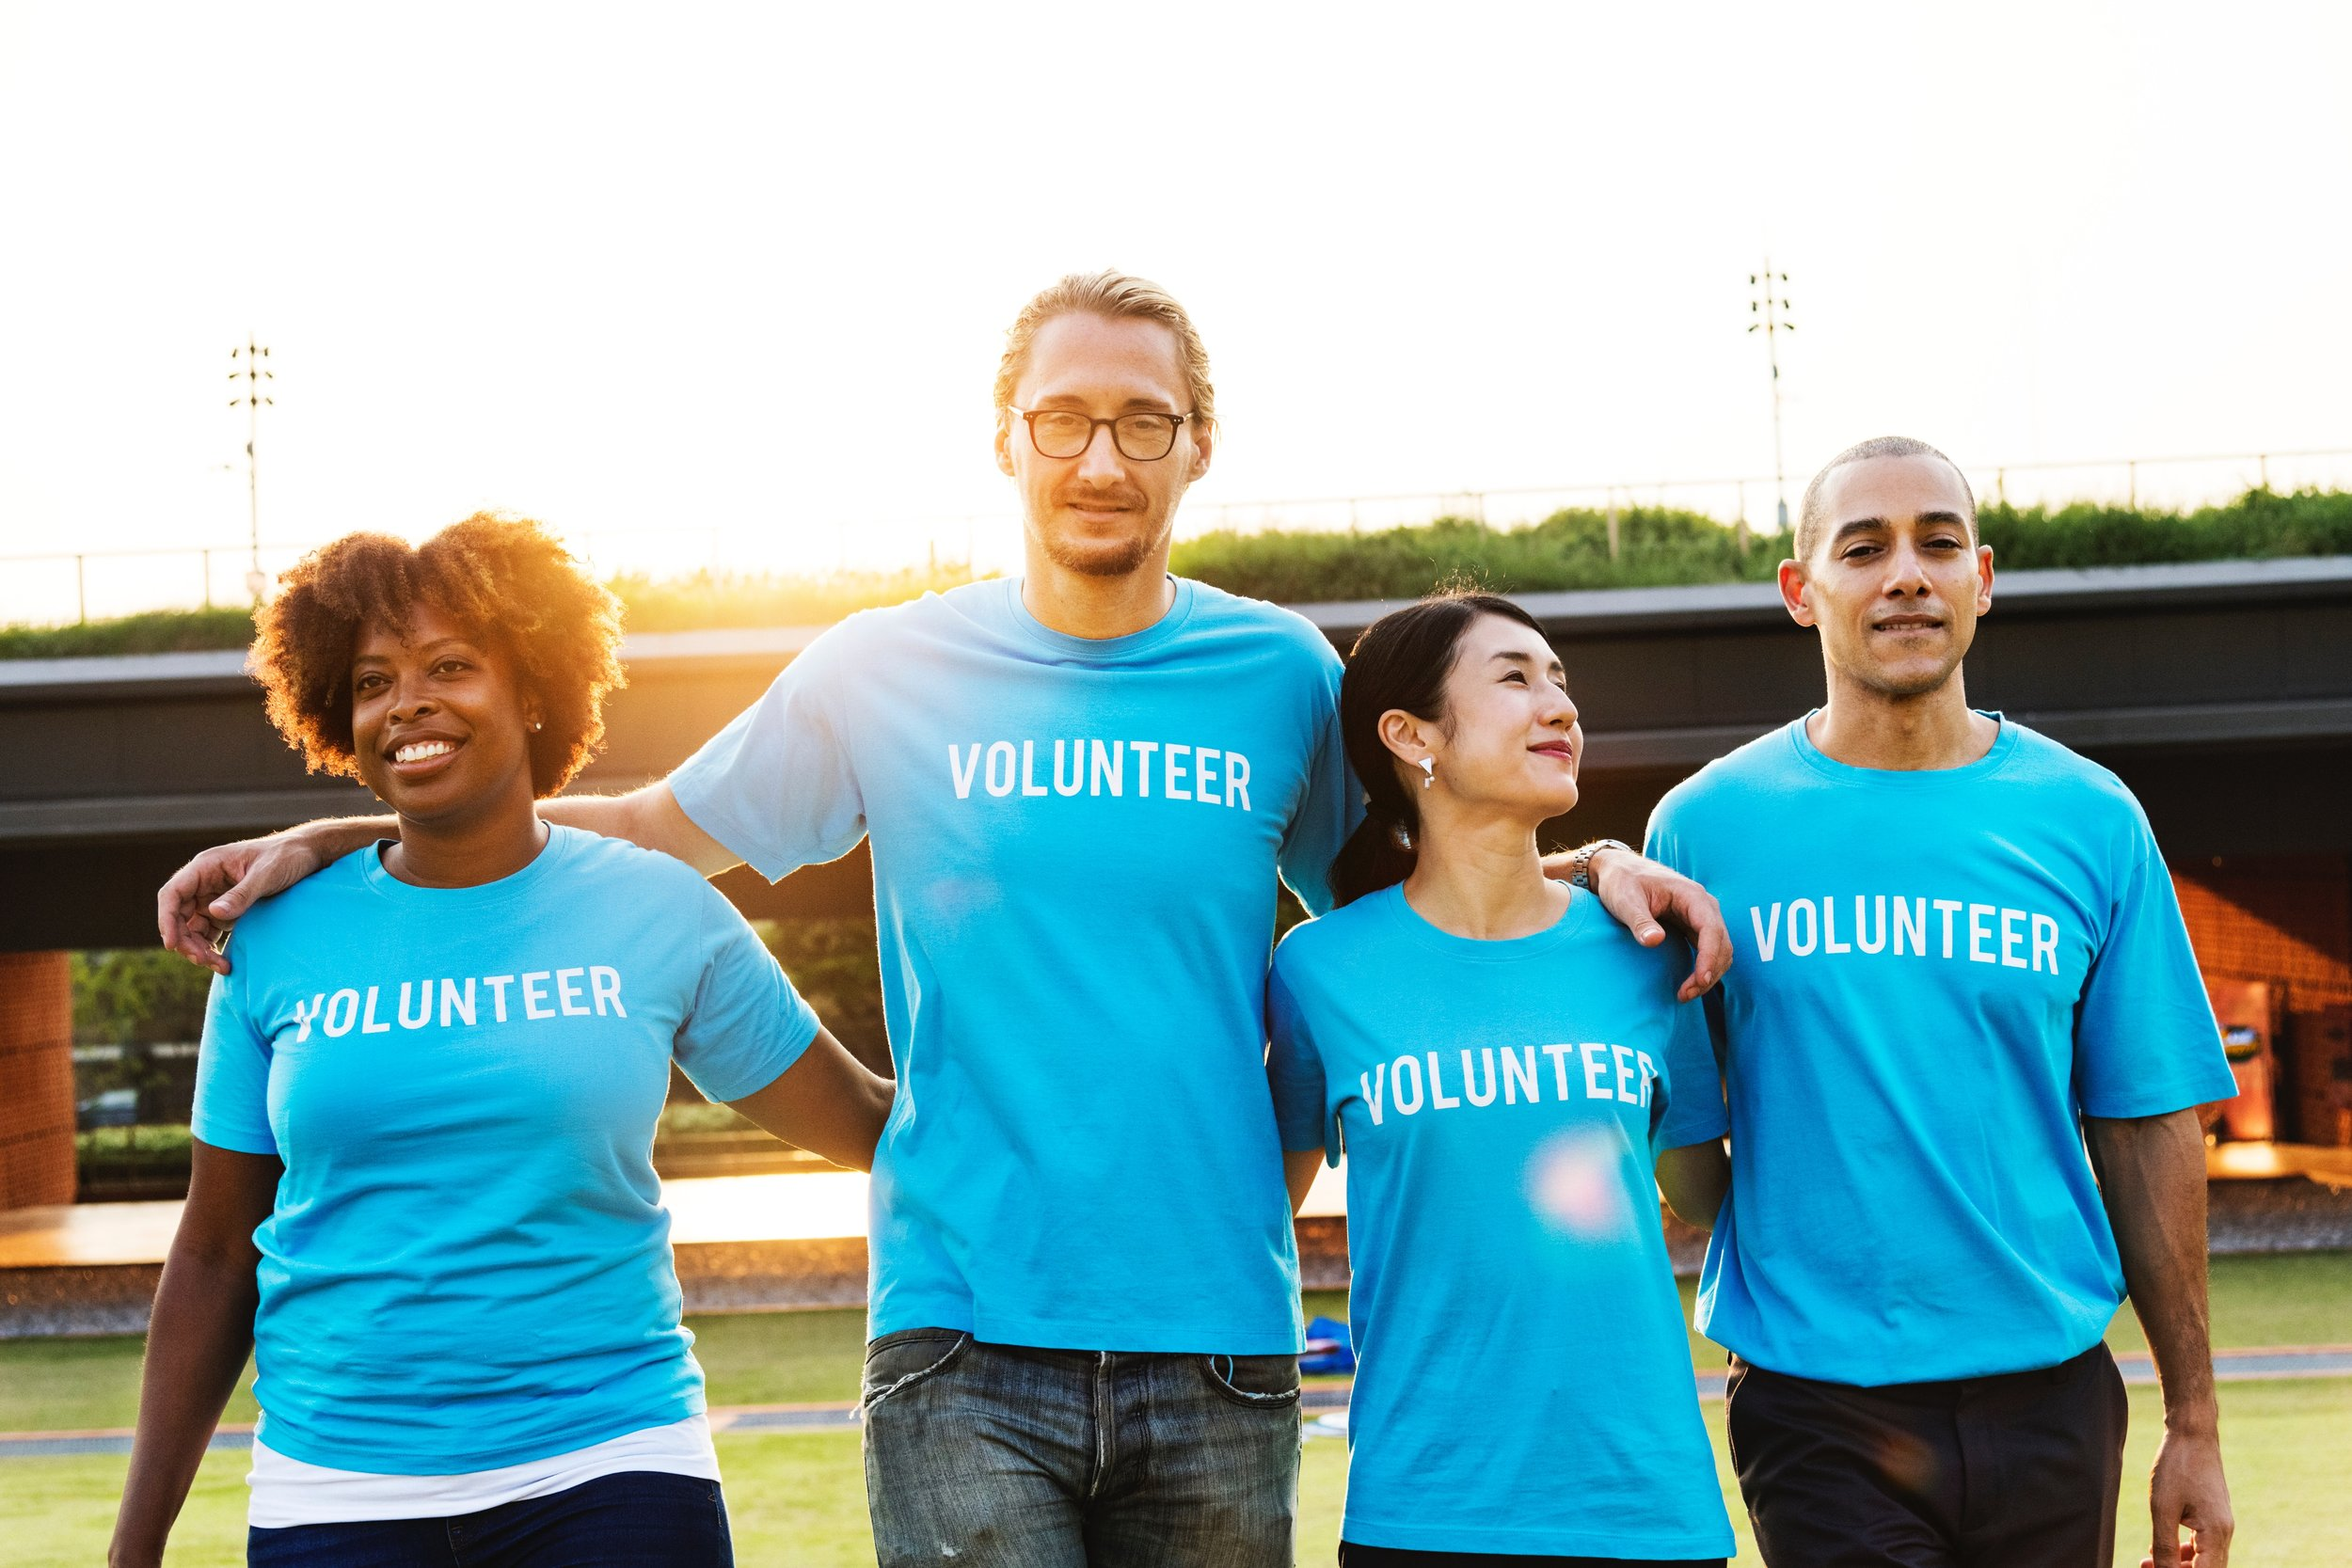 VOLUNTEER - DMT's volunteer program is a way for our community to invest their skills, minds, and hearts in support of our strategic initiatives.